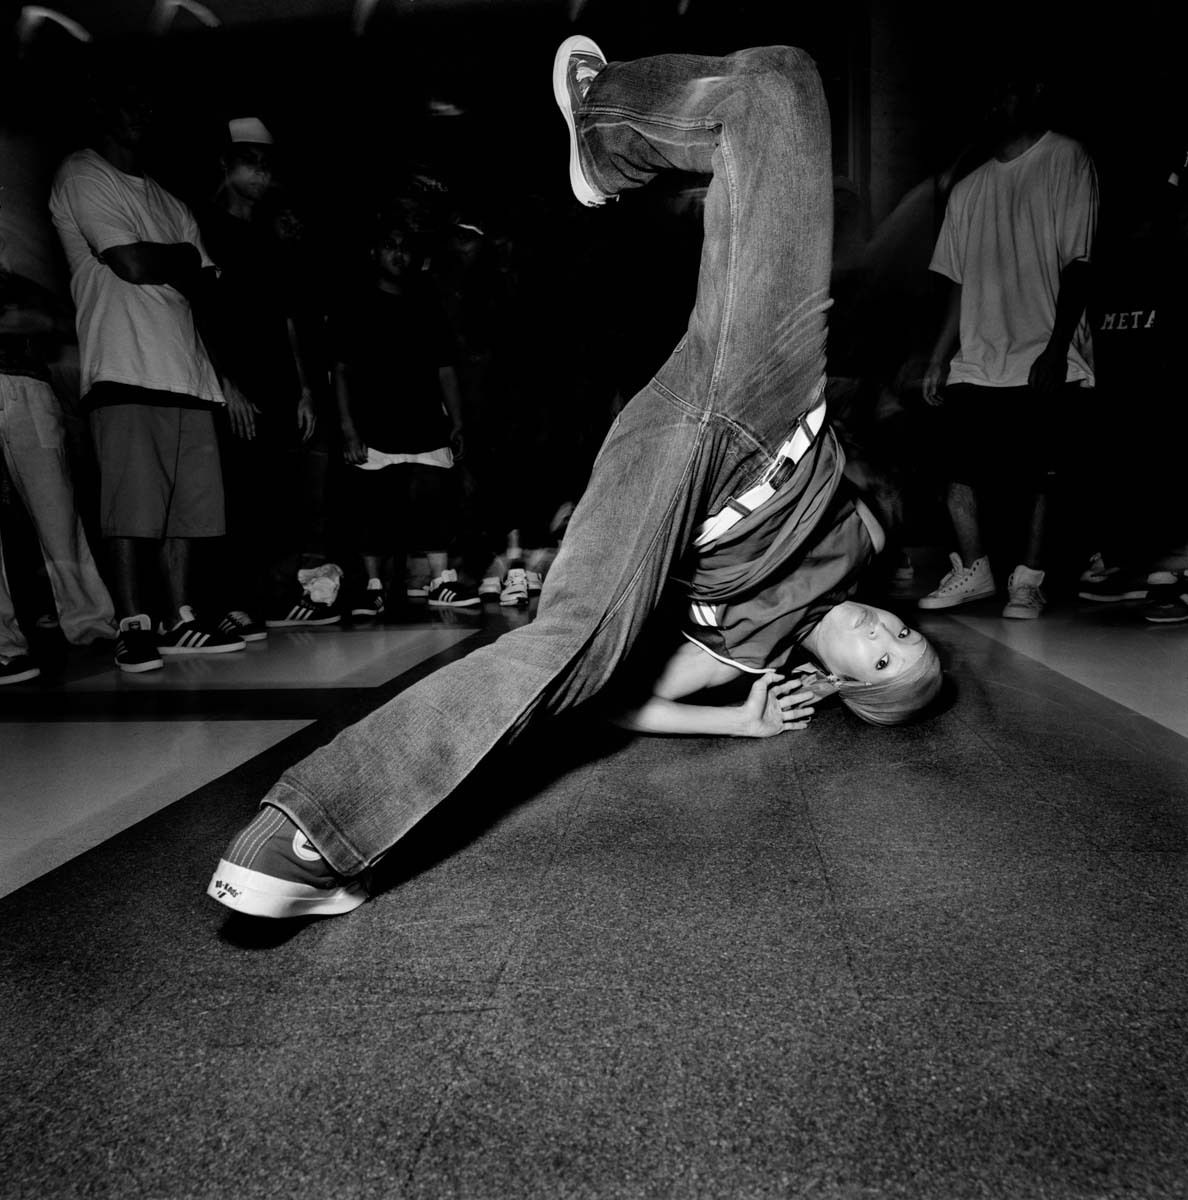 75_1cypher_breakdancers_1.jpg